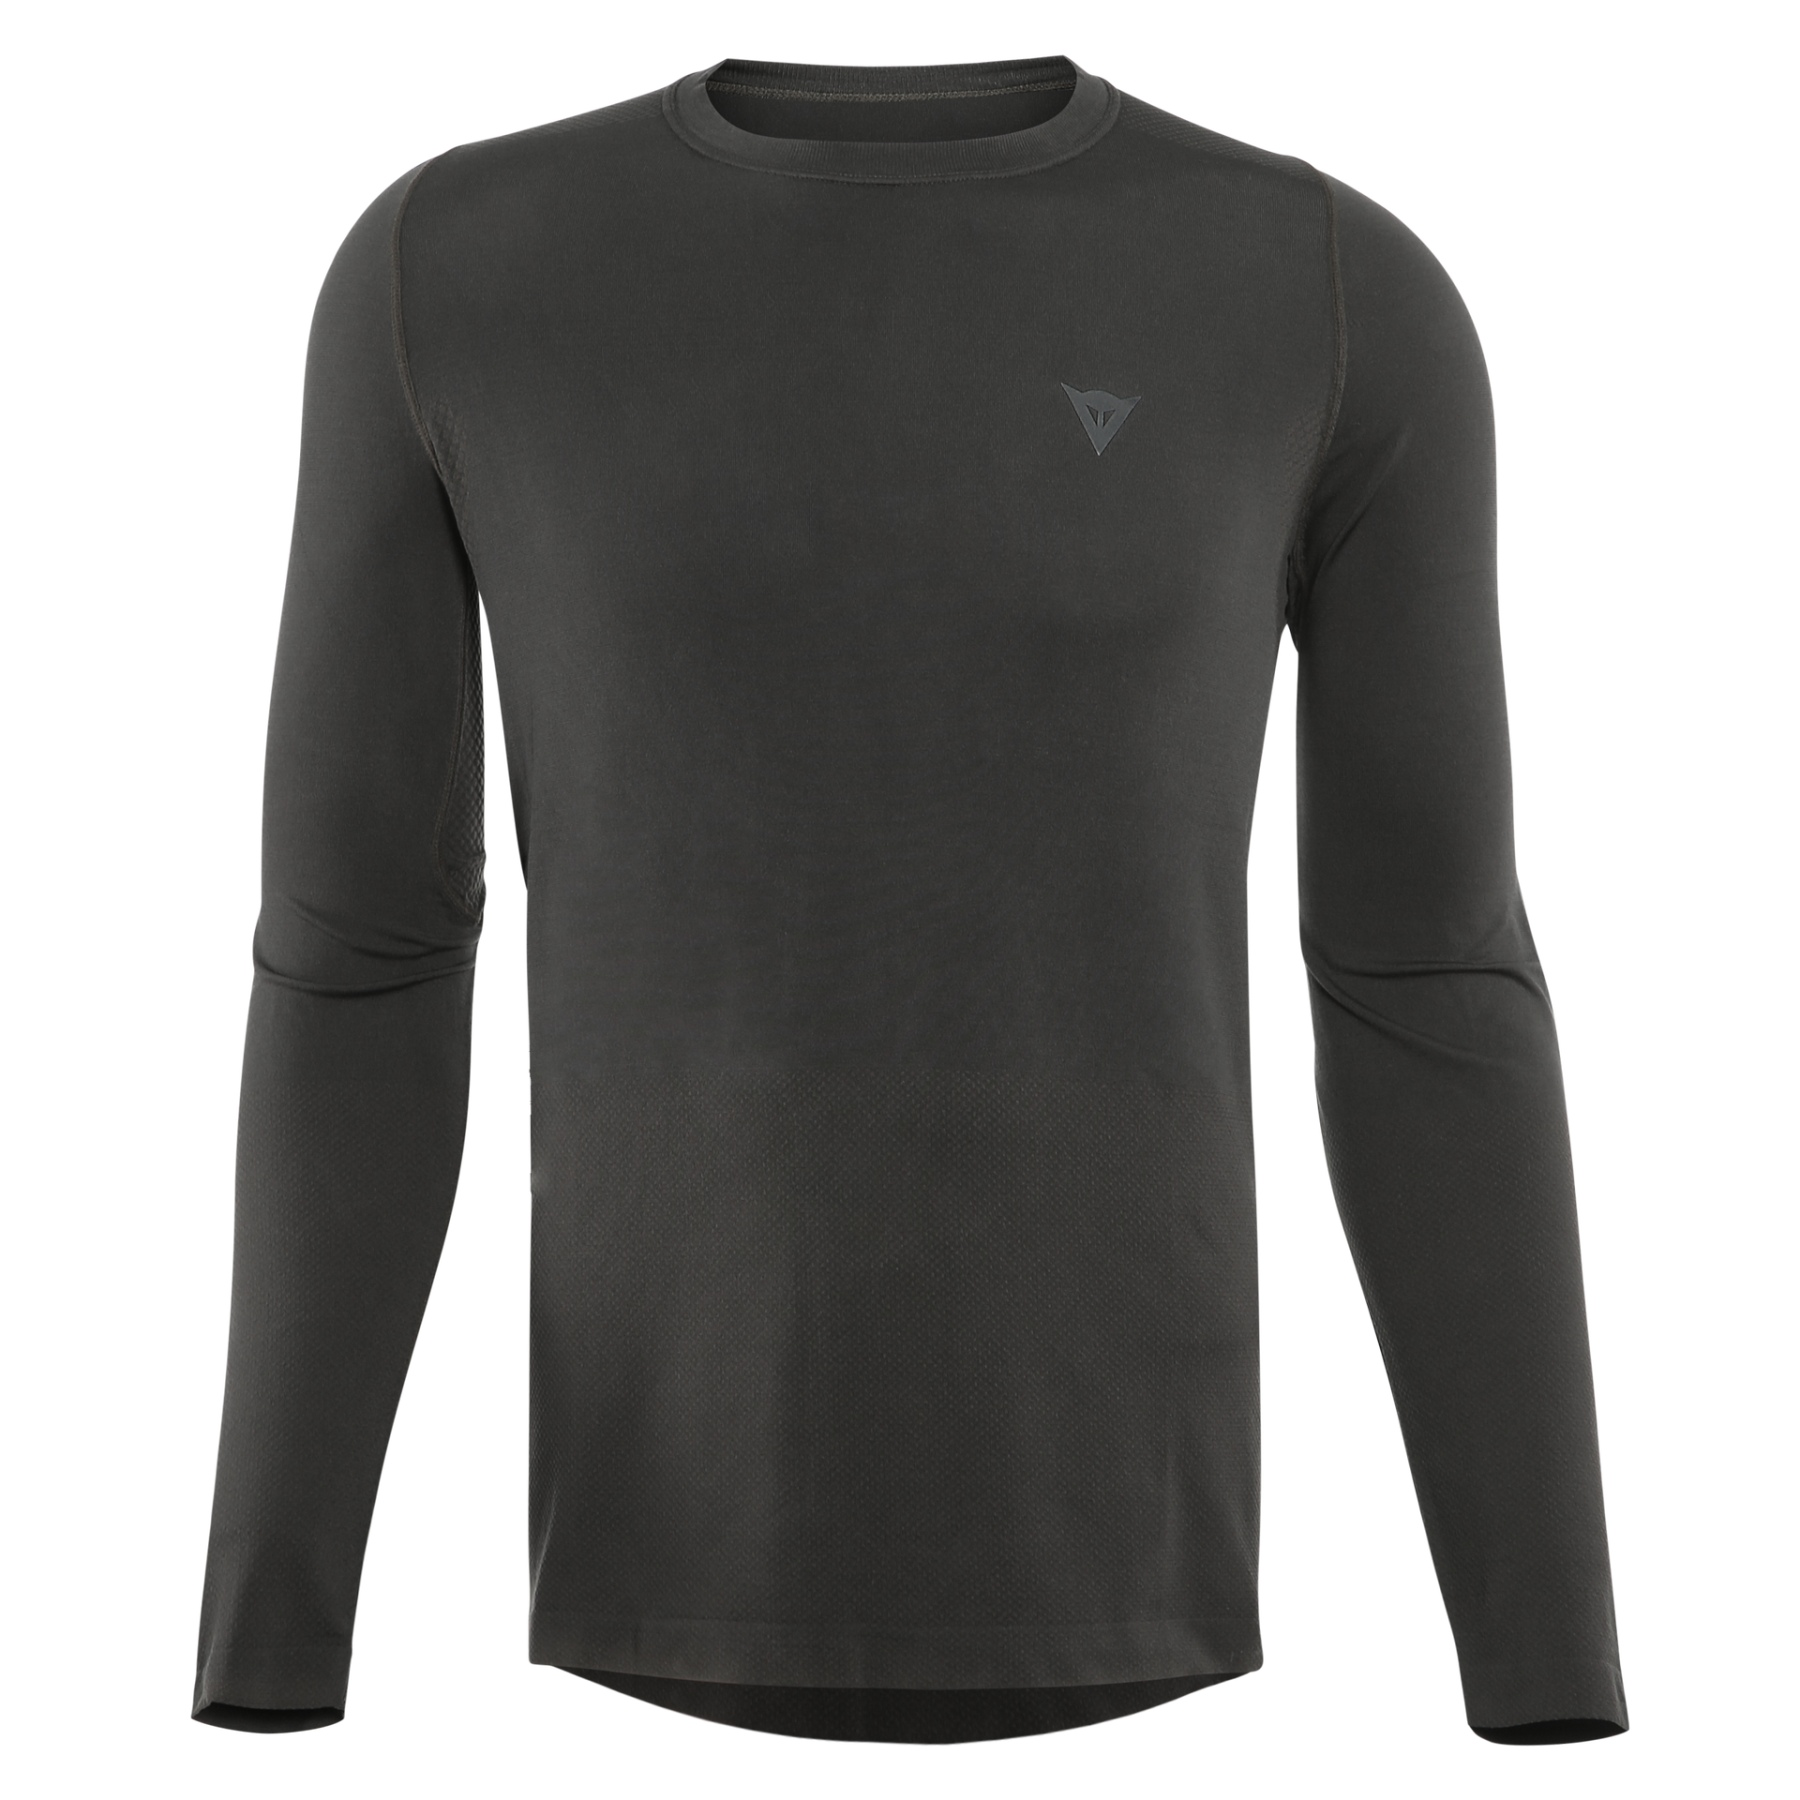 Picture of Dainese HGL Moss MTB Longsleeve Jersey - anthracite